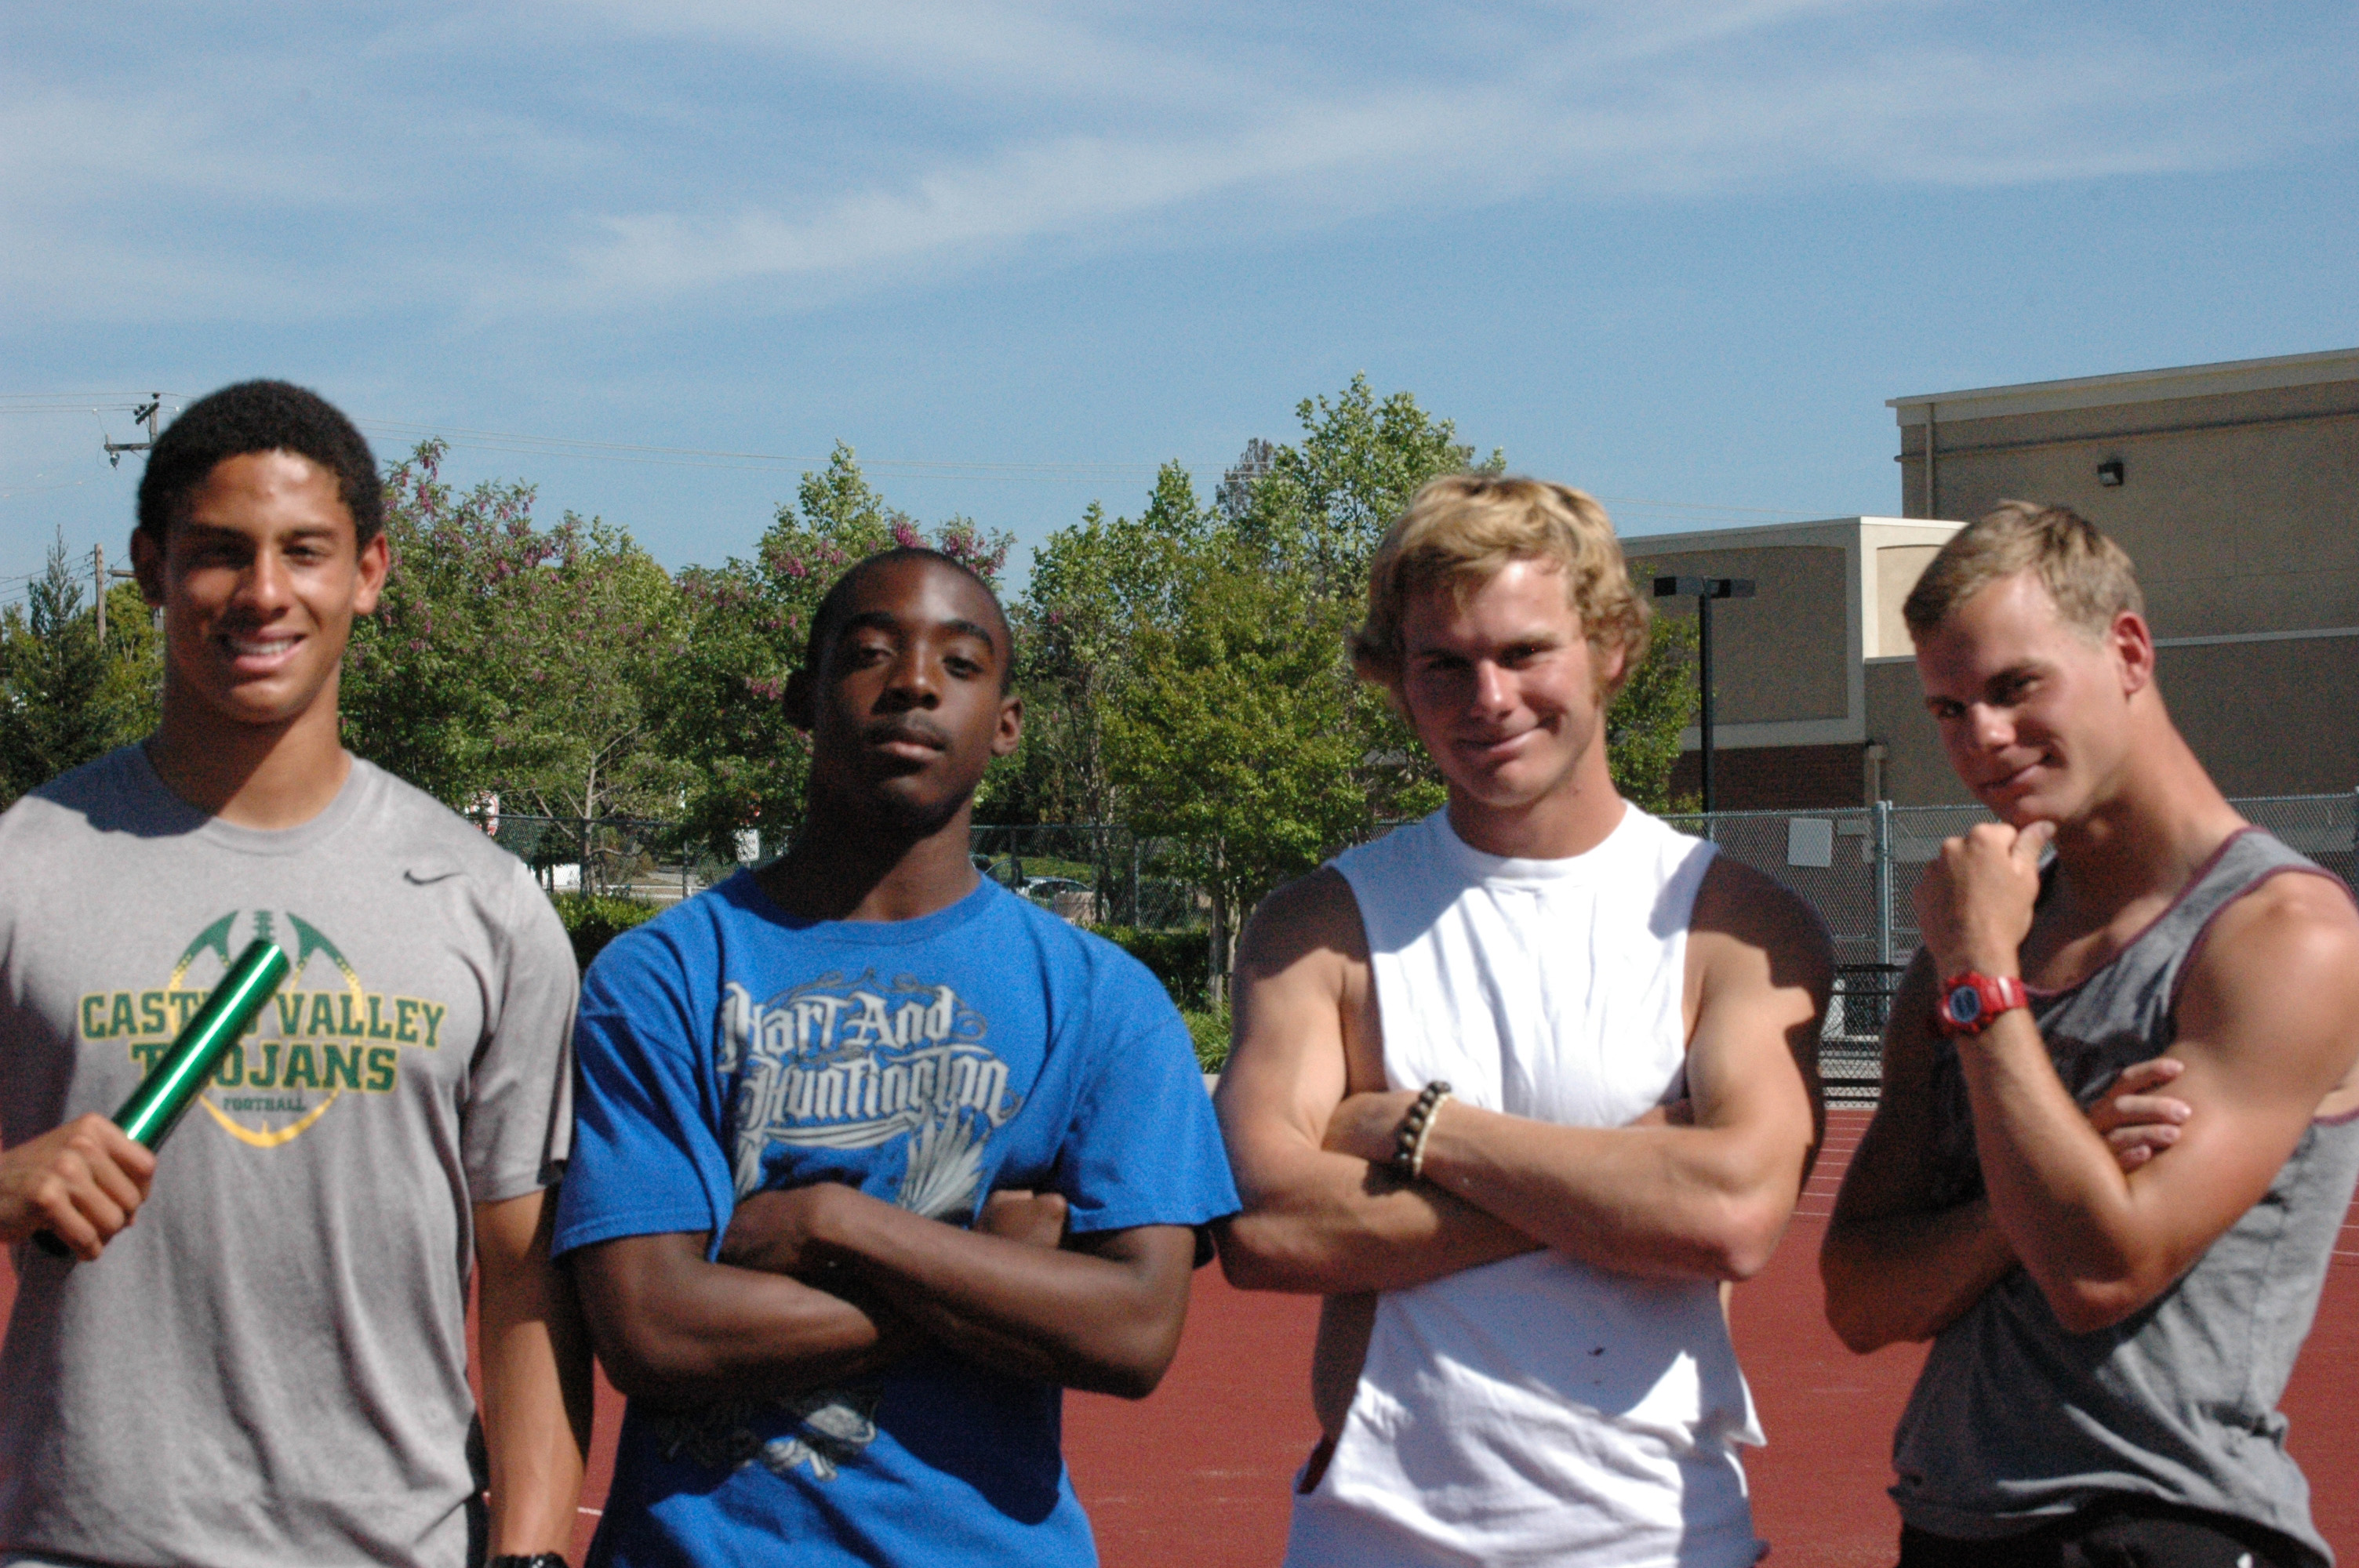 Myles Speegle, Cameron Edwards, Aaron Jones and Matt Speegle pose proudly for the camera.